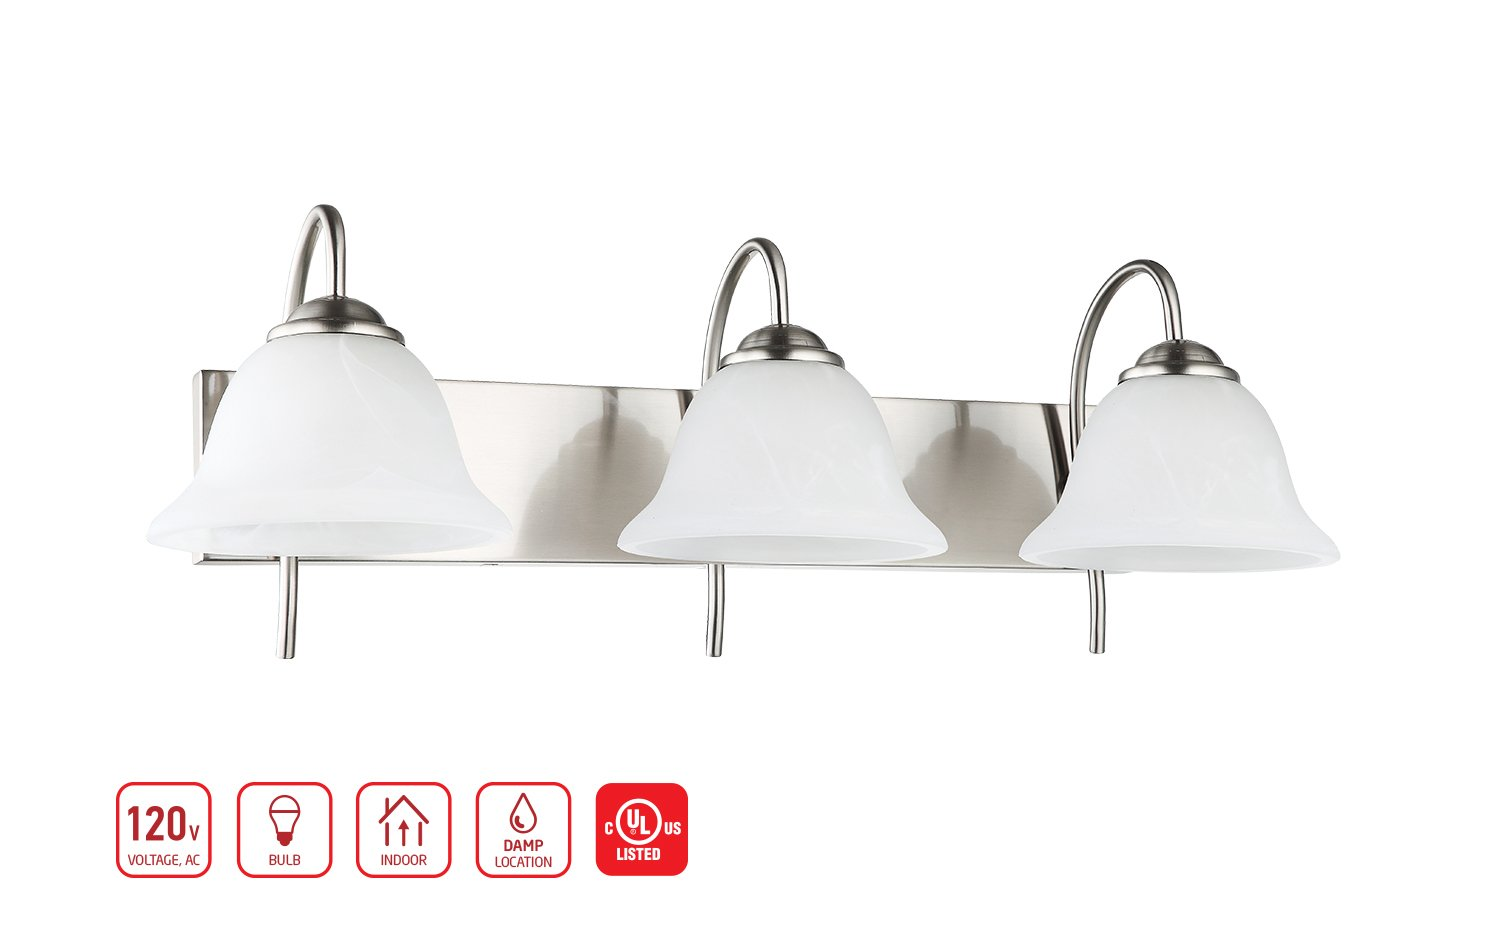 3-Light Bathroom VANITY and Kitchen Wall Sconce Fixture, Satin Nickel Finish with Alabaster Glass Bell Shades, E26 Medium Base For Three Bulbs, UL Listed